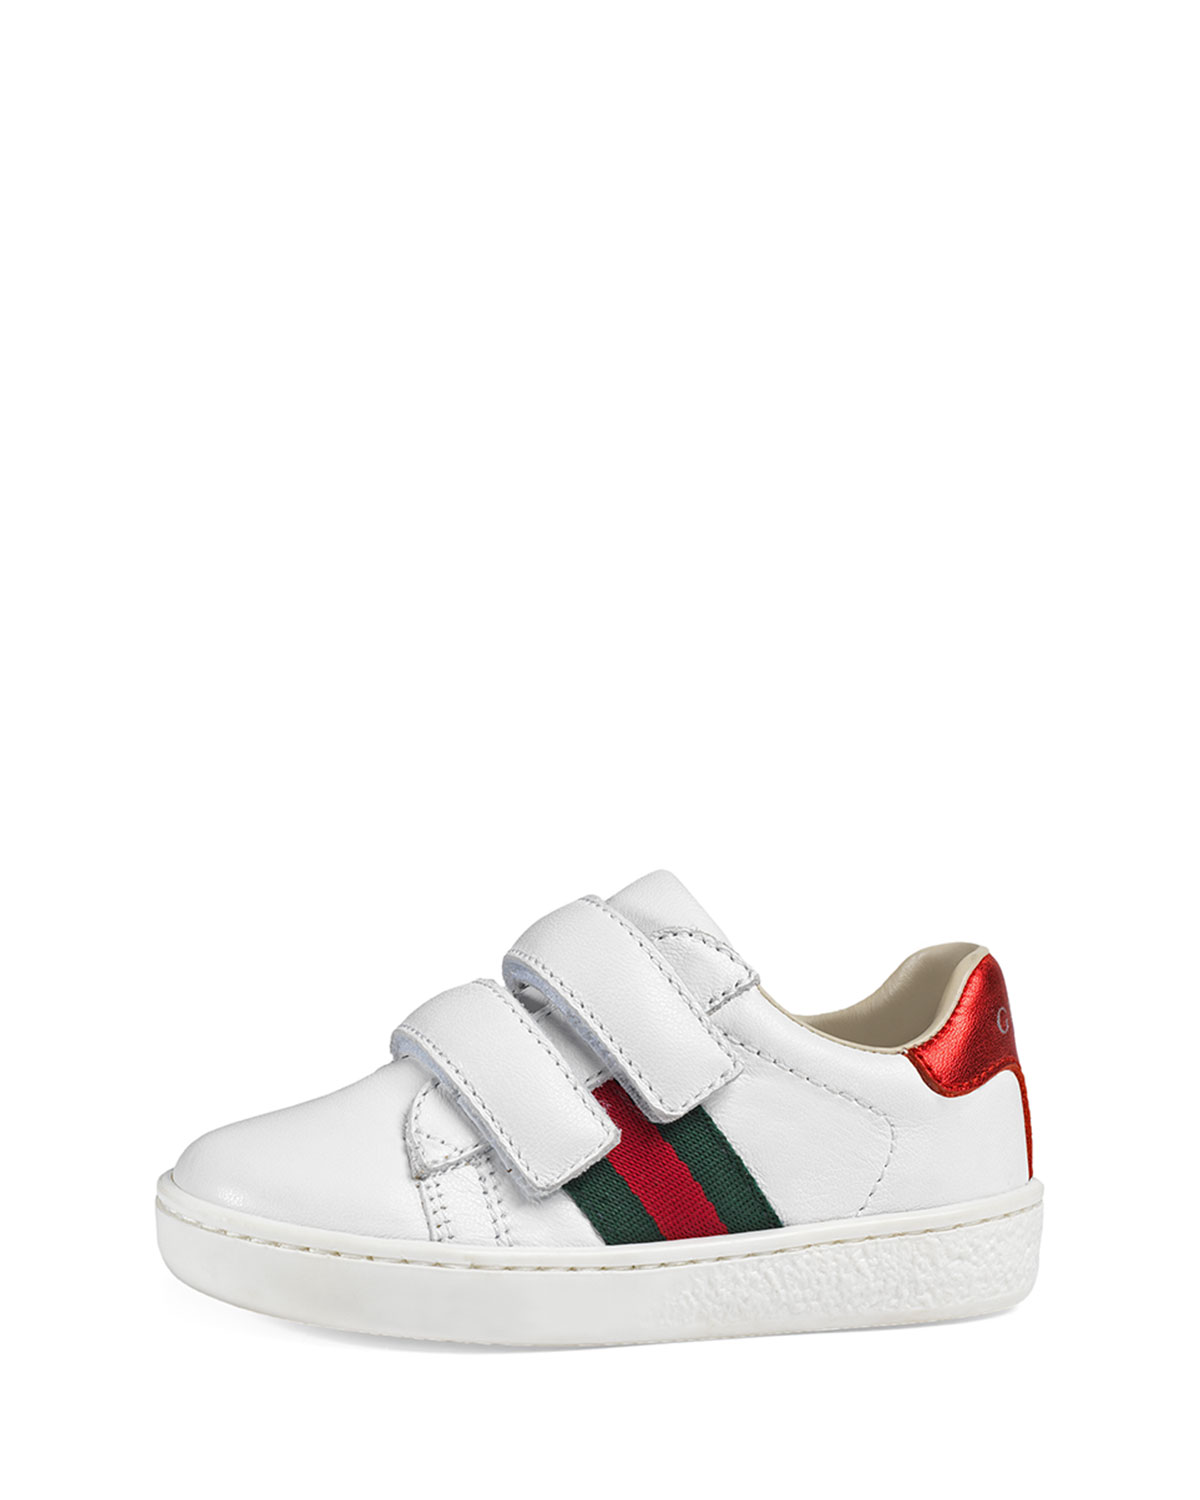 4cf68c48b1c Gucci Leather Grip-Strap Sneakers